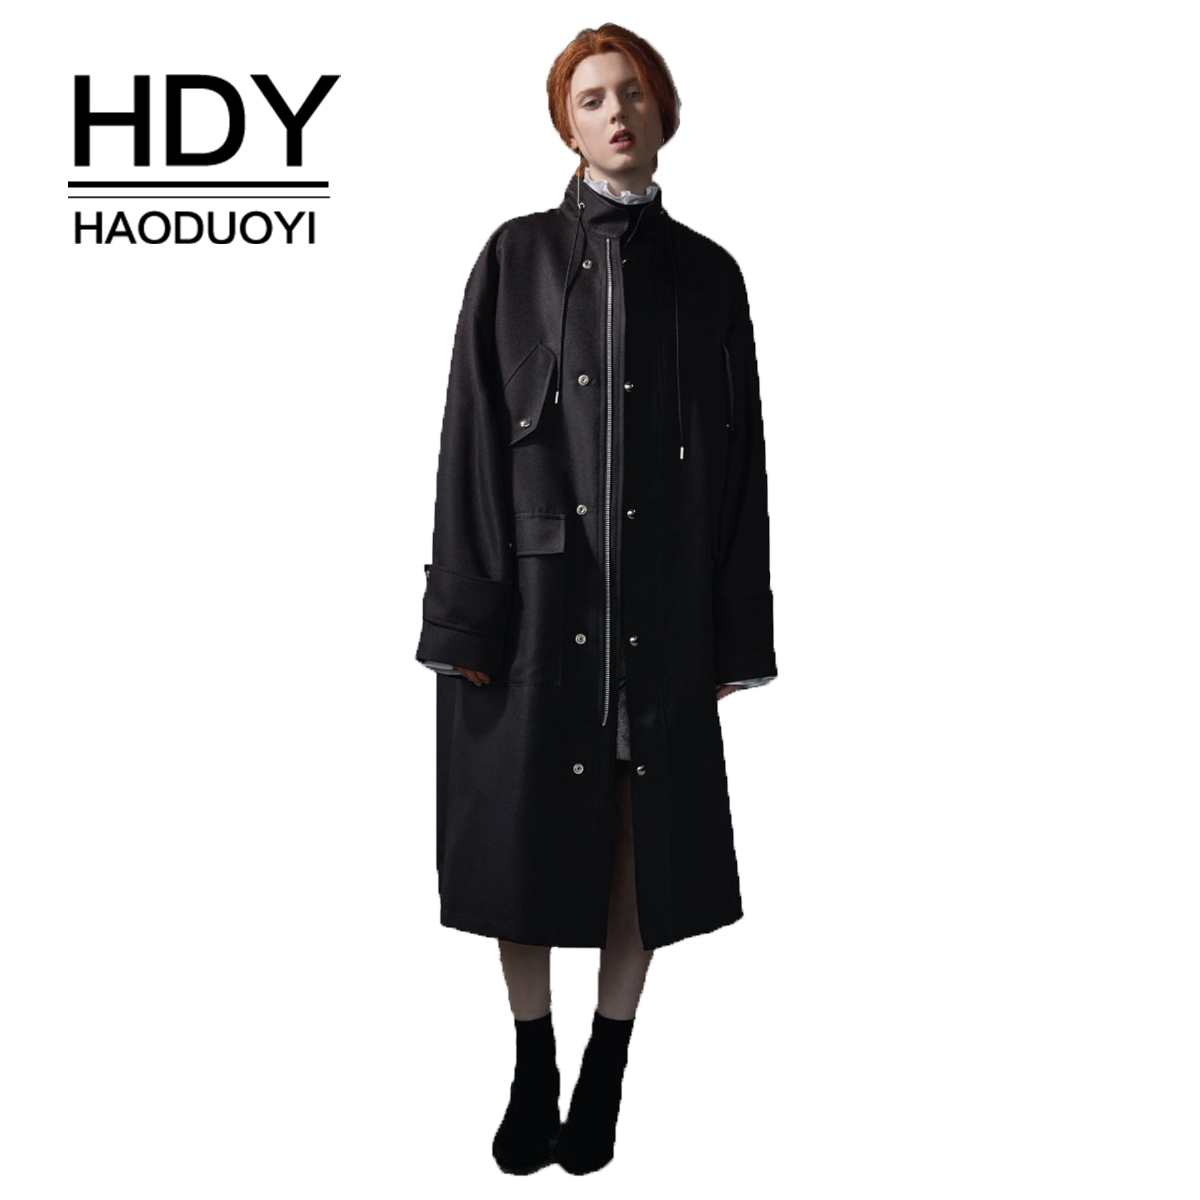 HDY Haoduoyi Oversized Collar Split Color Stitching Windbreaker Black New Arrival Autumn   Trench   Coats